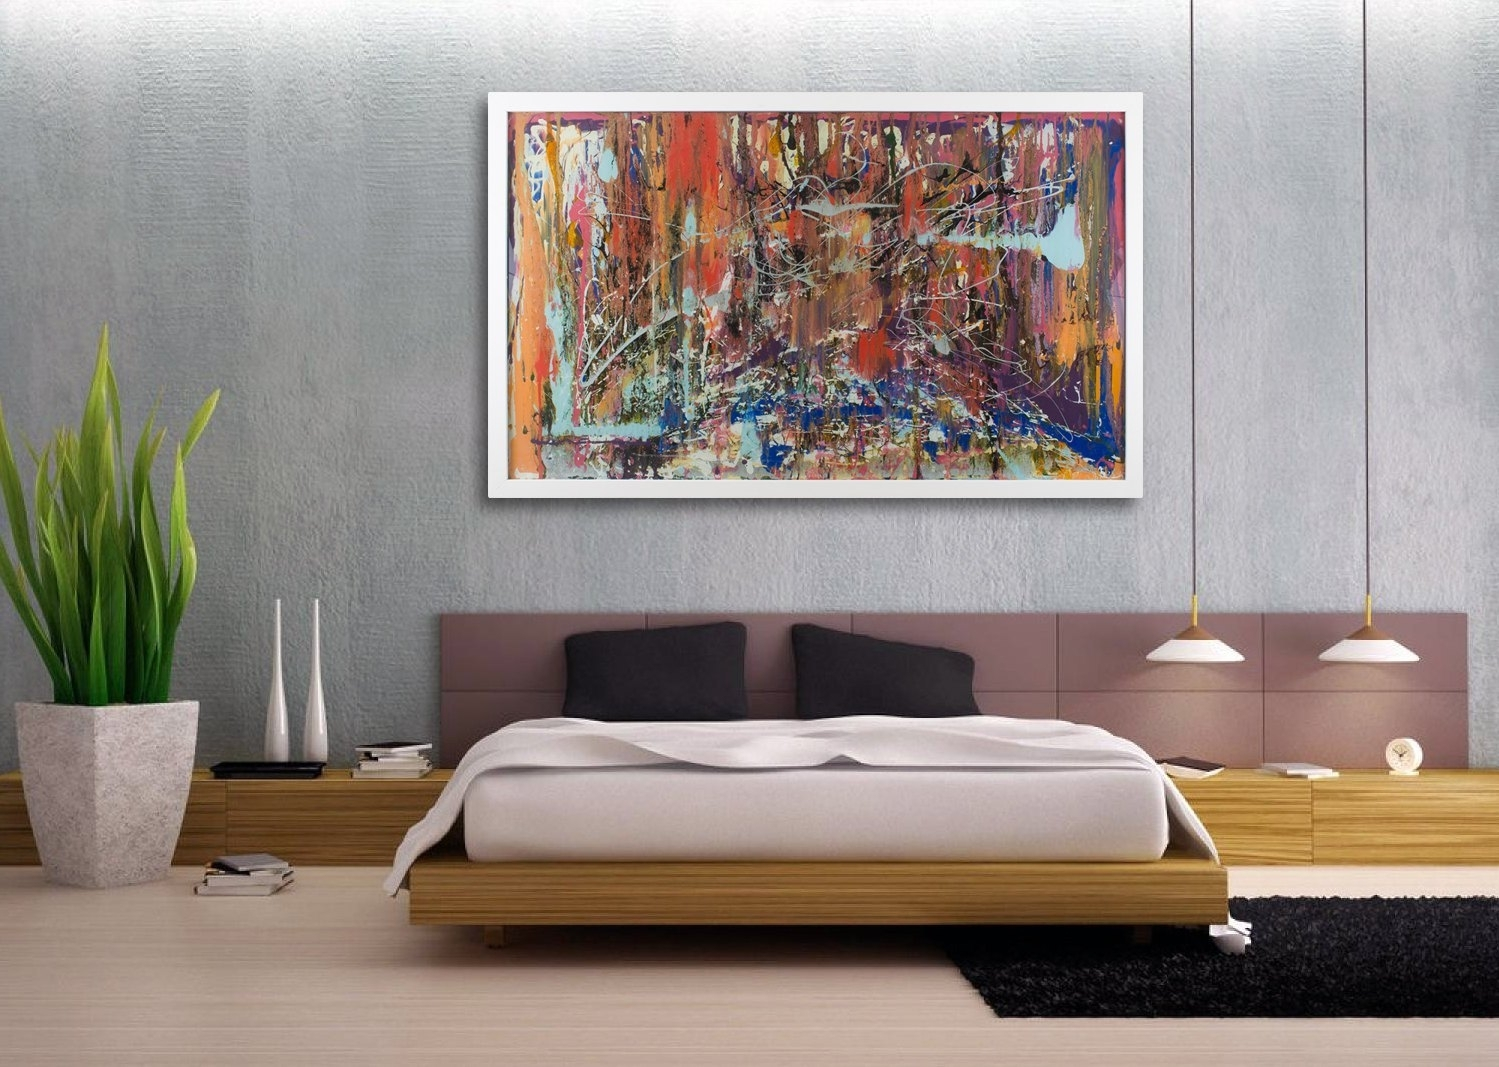 Congenial Bedroom Piece Wall Abstract Large Oil Paintingsmulti With 2018 Extra Large Canvas Abstract Wall Art (View 5 of 20)